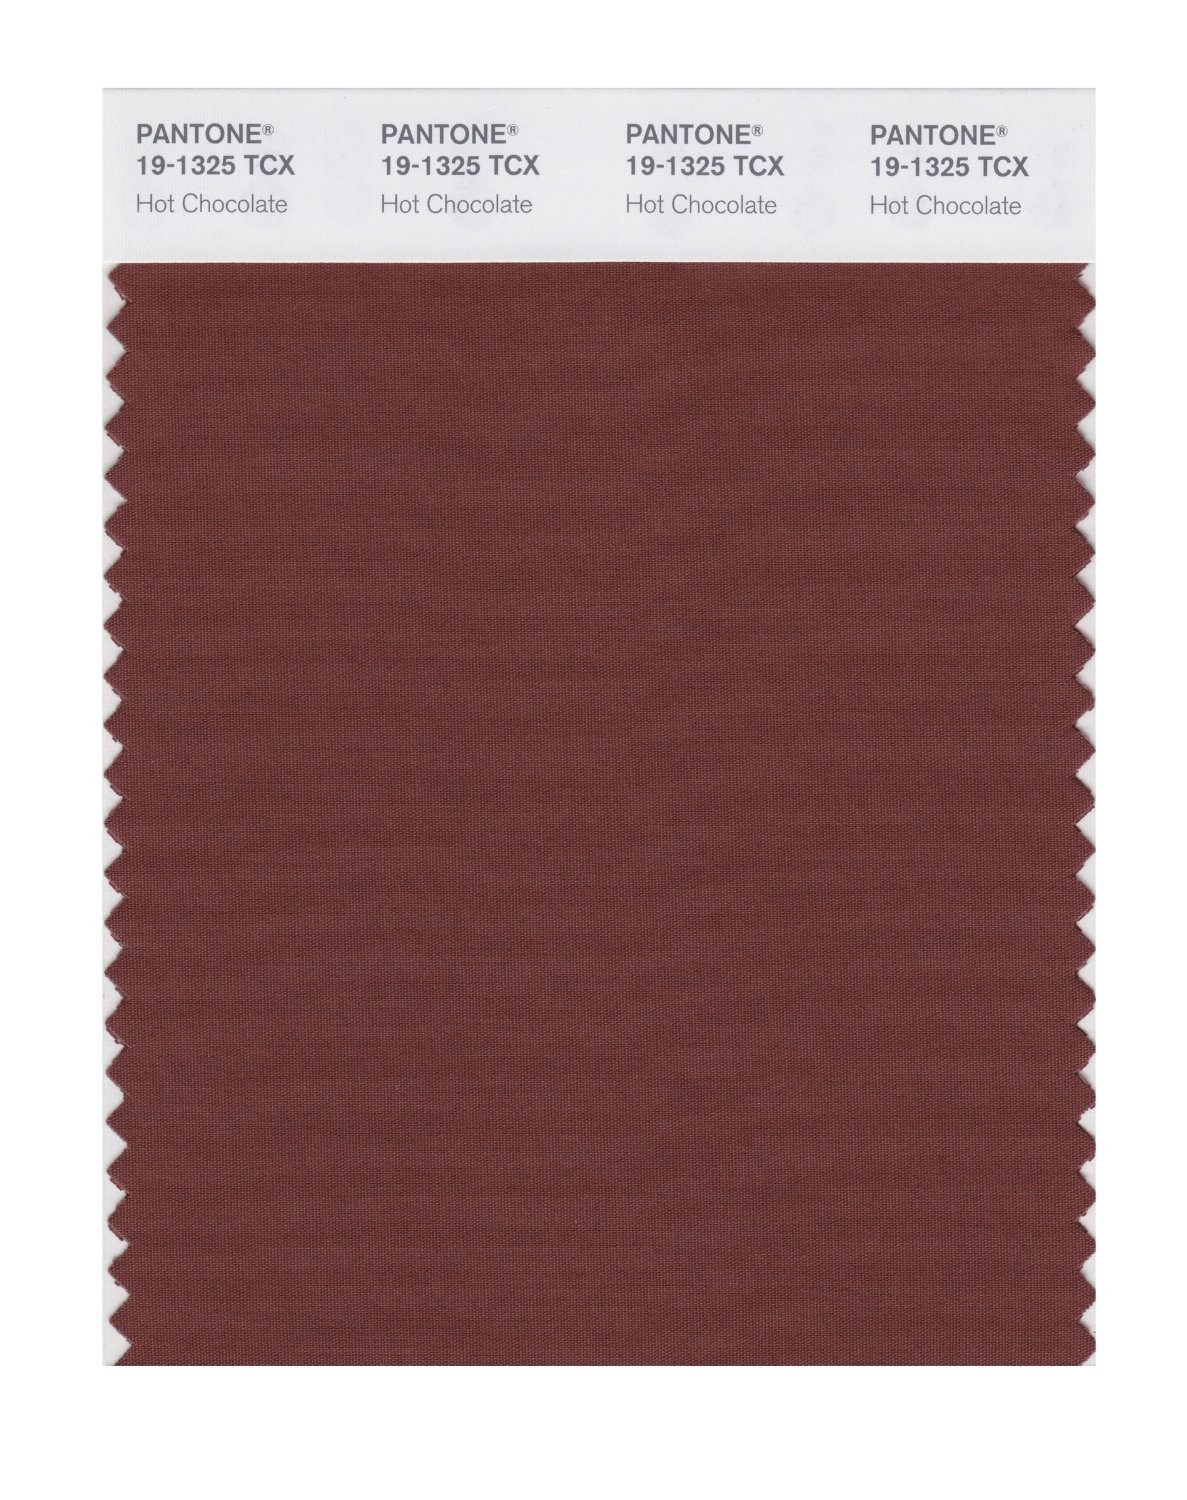 Pantone 19-1325 TCX Swatch Card Hot Chocolate